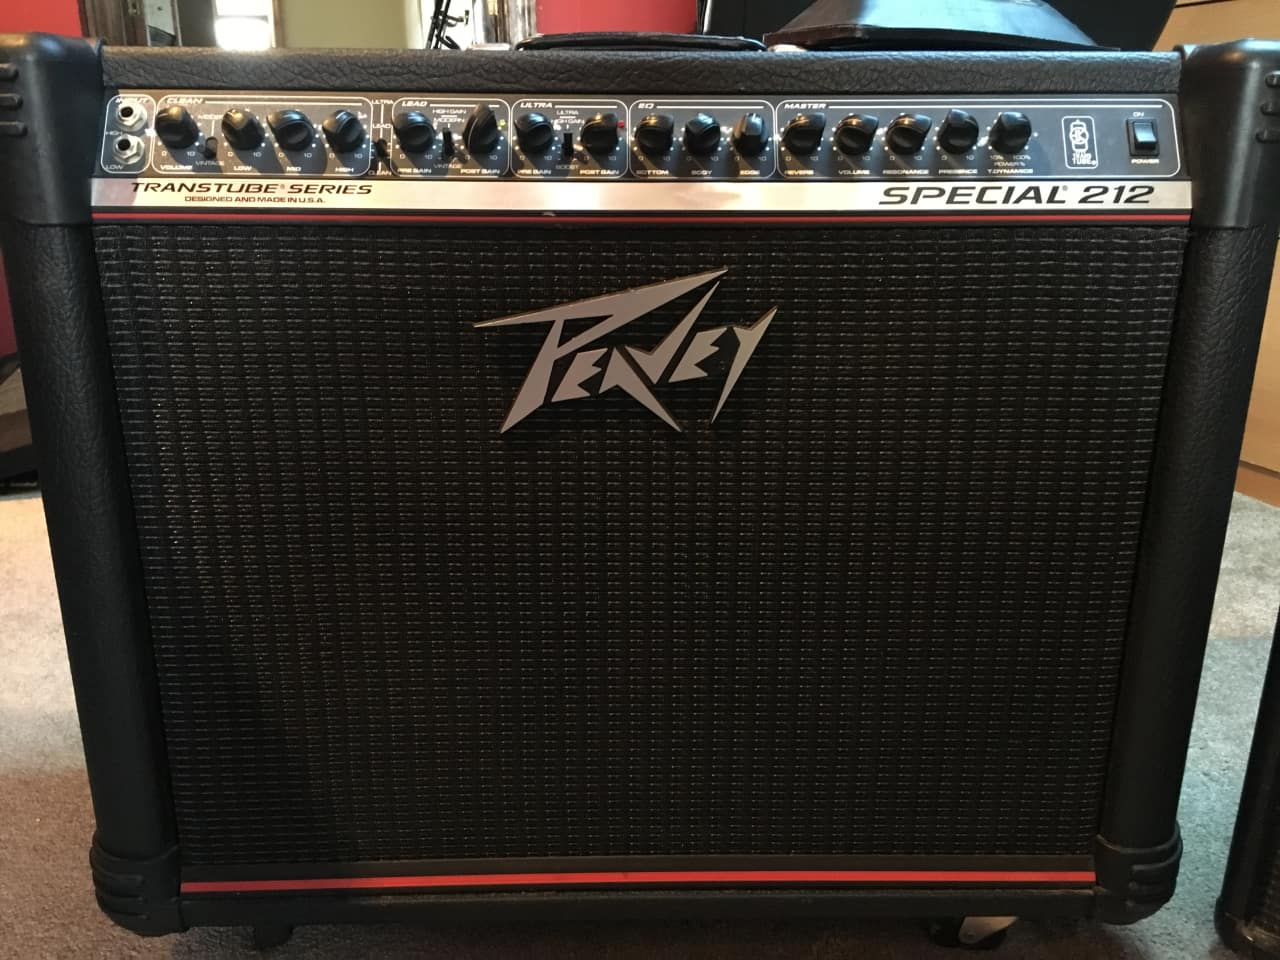 peavey transtube special 212 amp 2000 39 s black reverb. Black Bedroom Furniture Sets. Home Design Ideas